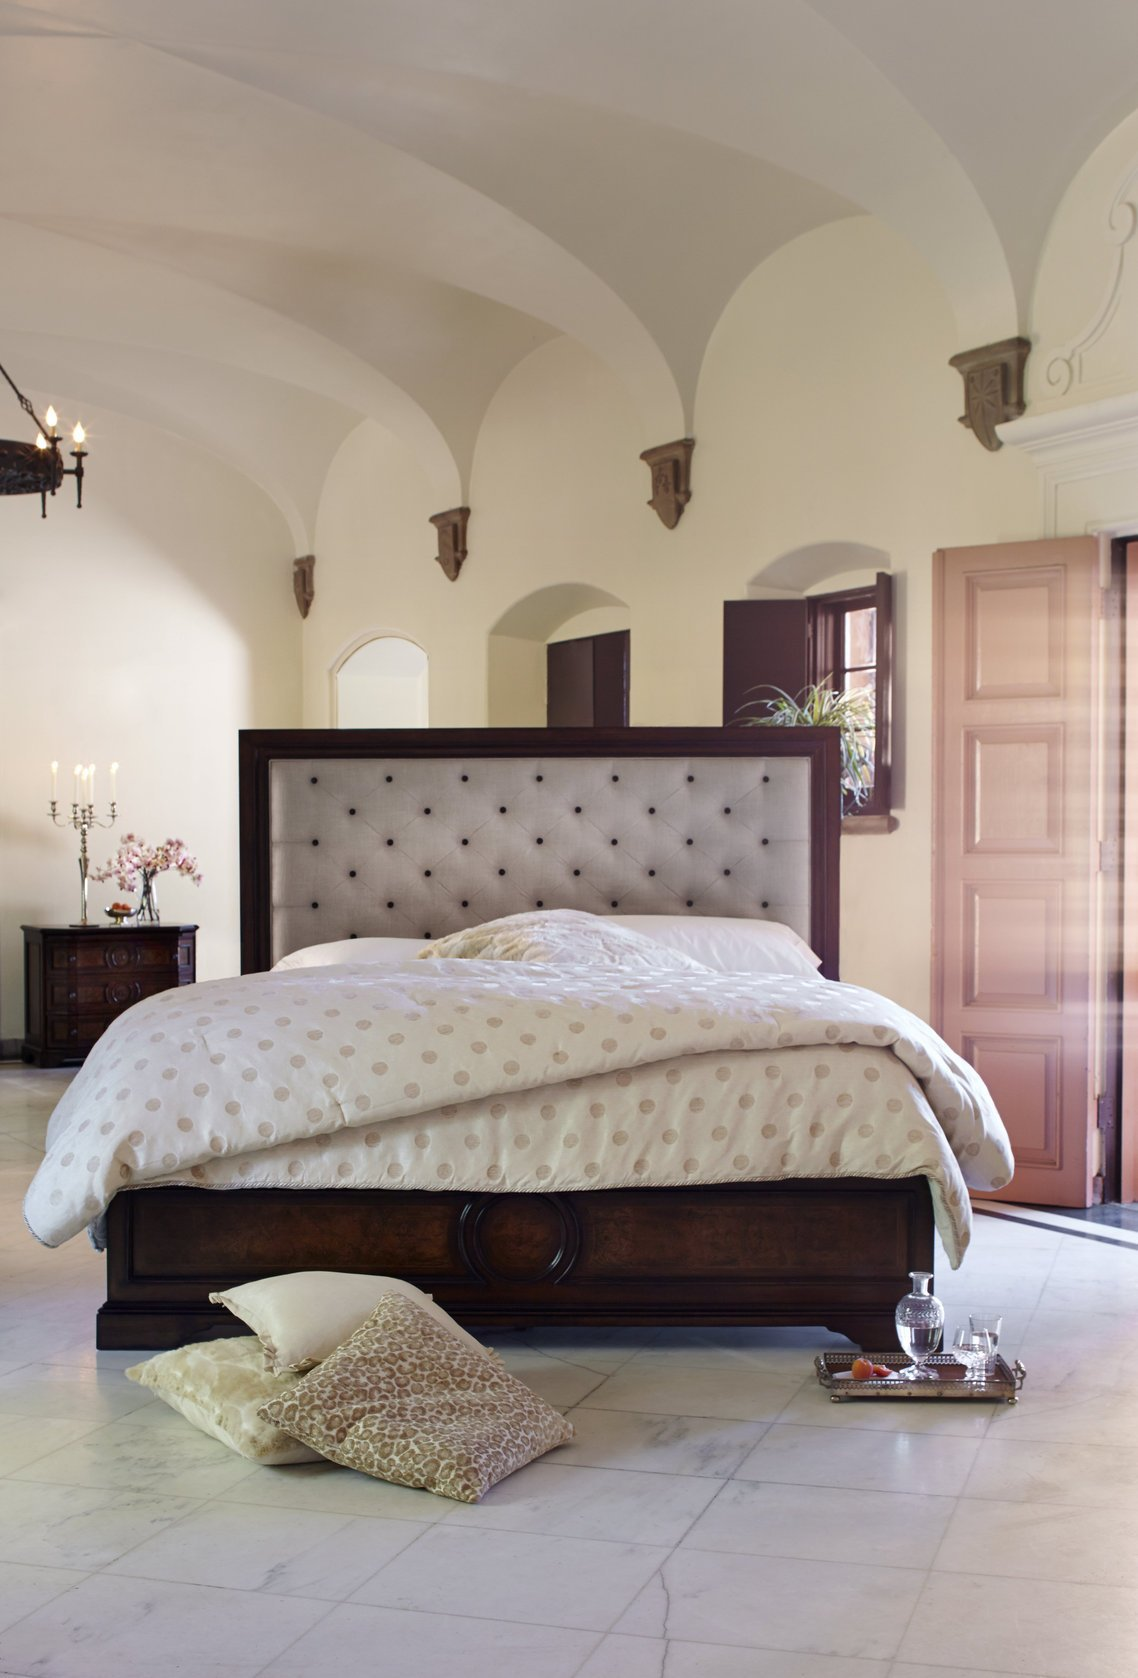 Best The Bella Cera Fabric Upholstered Bedroom Collection Bedroom Furniture Bedroom Sets With Pictures